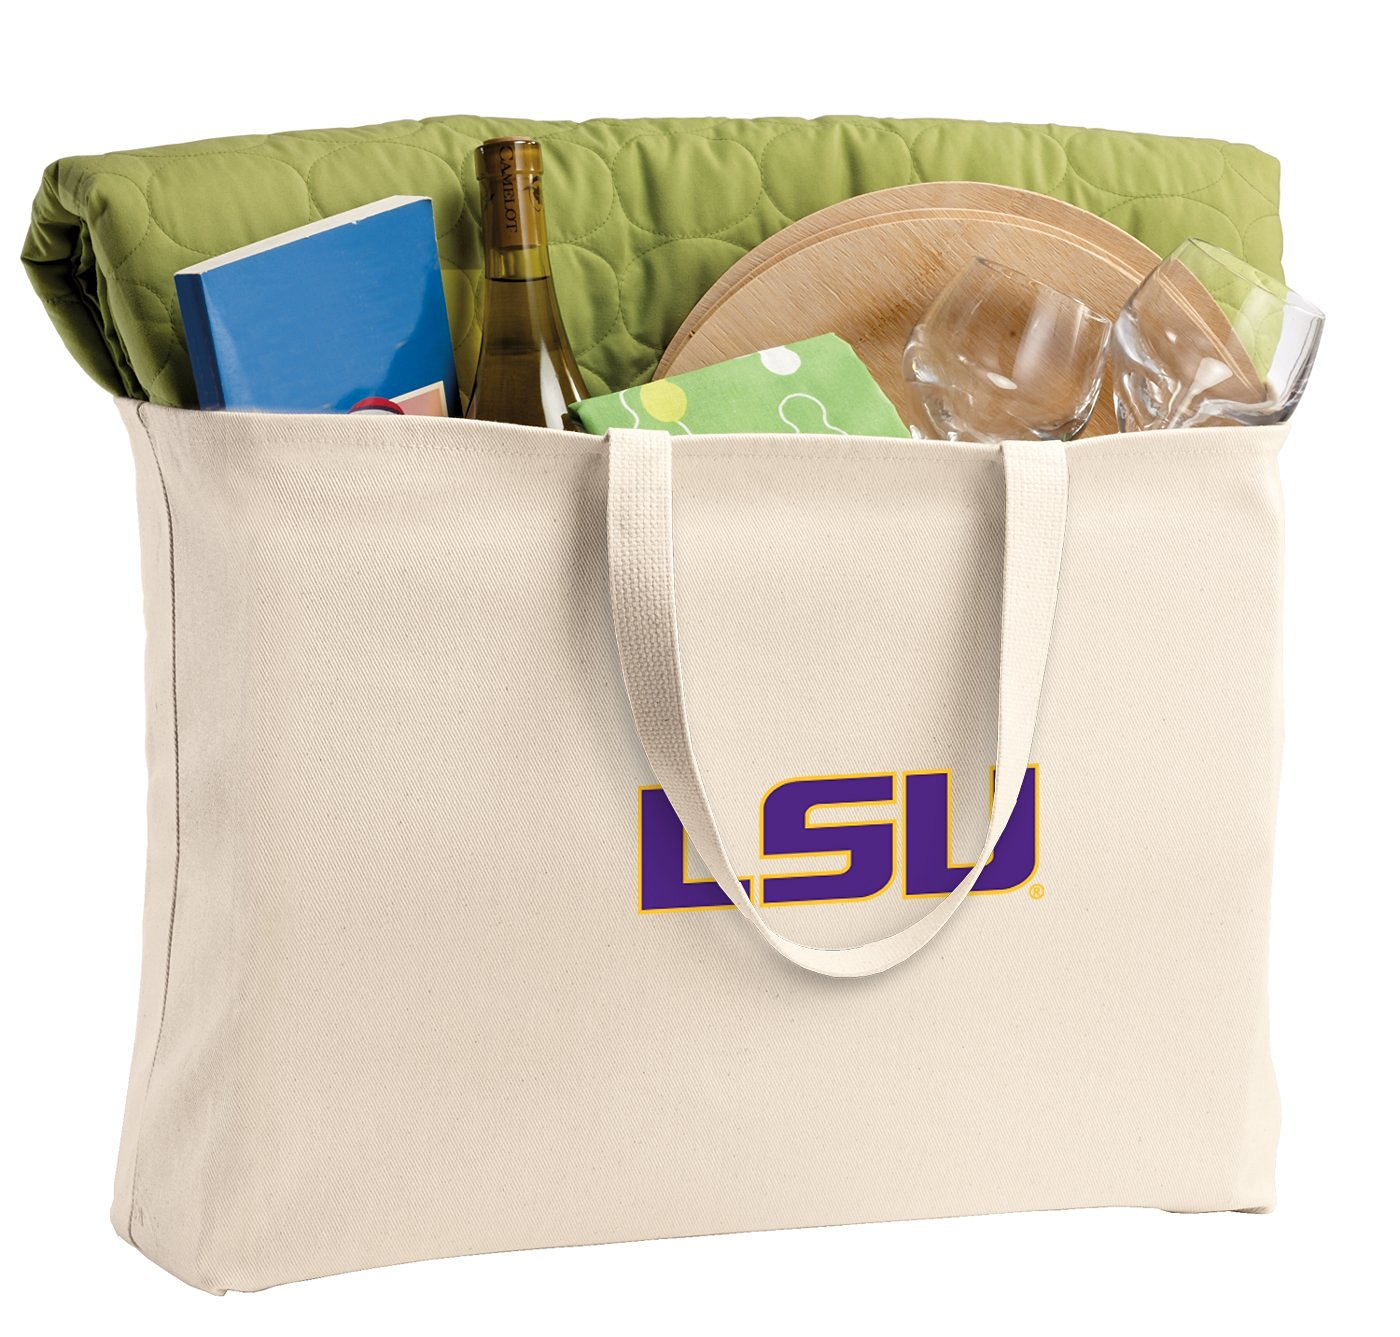 JUMBO LSU Tigers Tote Bag or Large Canvas LSU Shopping Bag